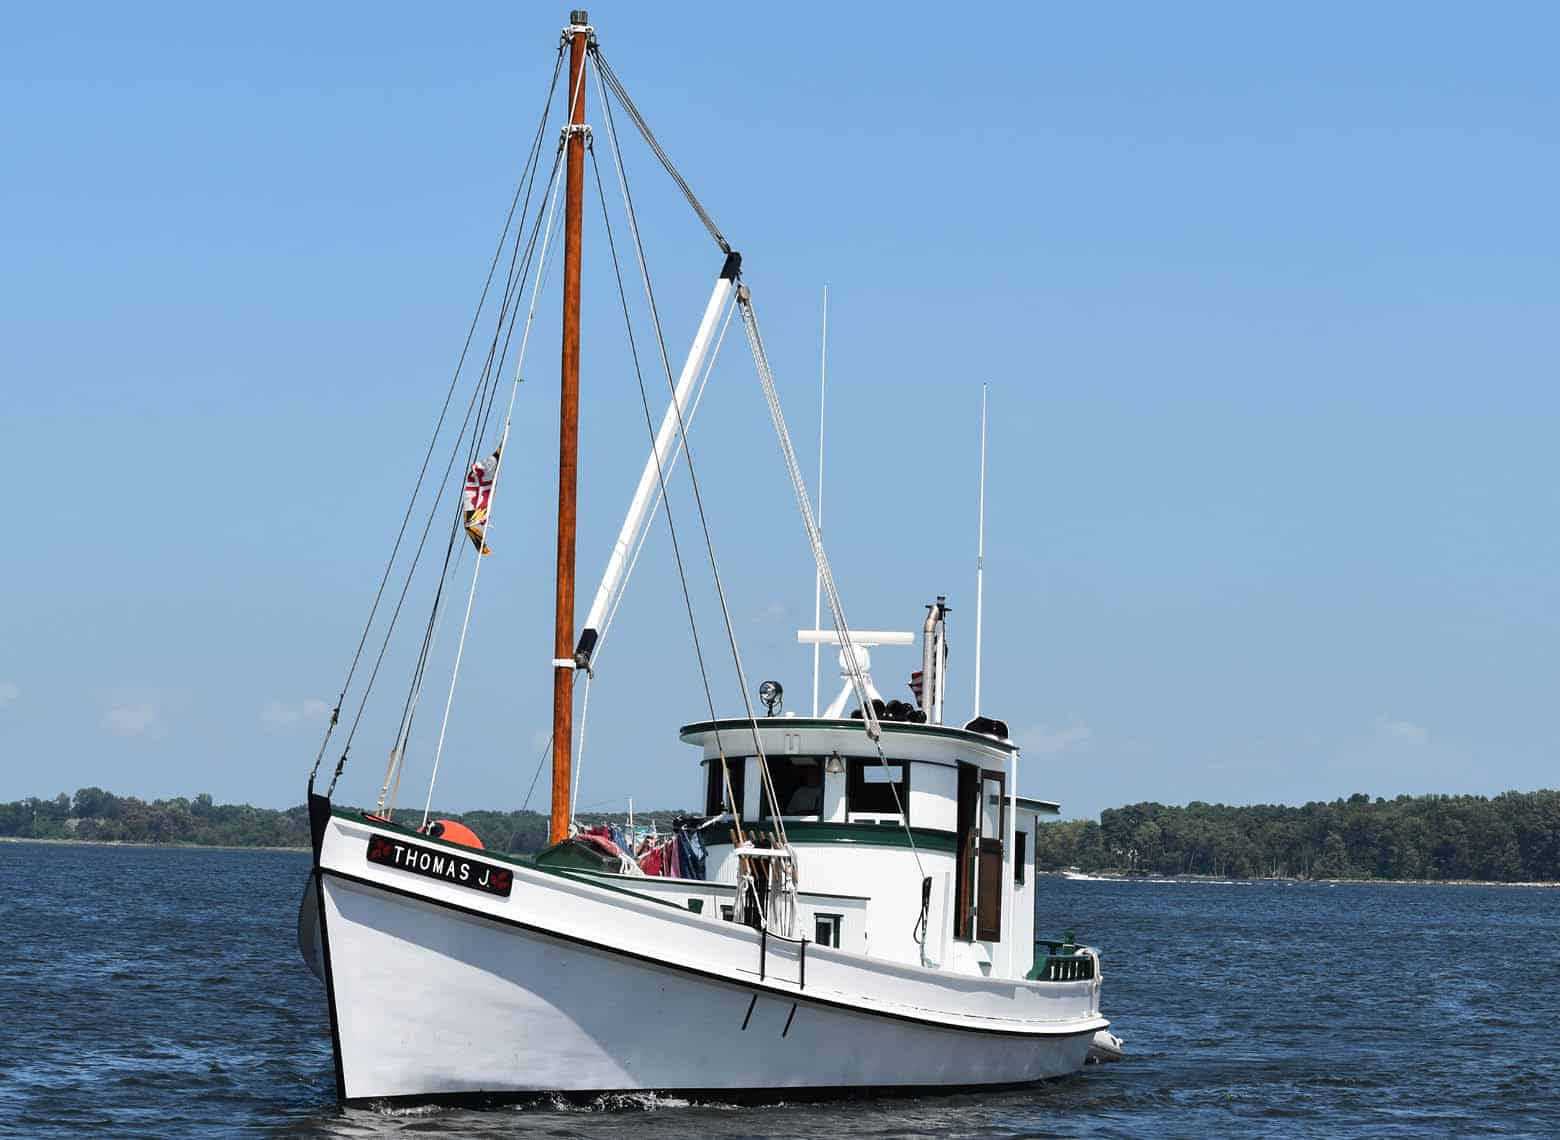 12th Annual Buyboat Reunion at the Chesapeake Bay Maritime Museum